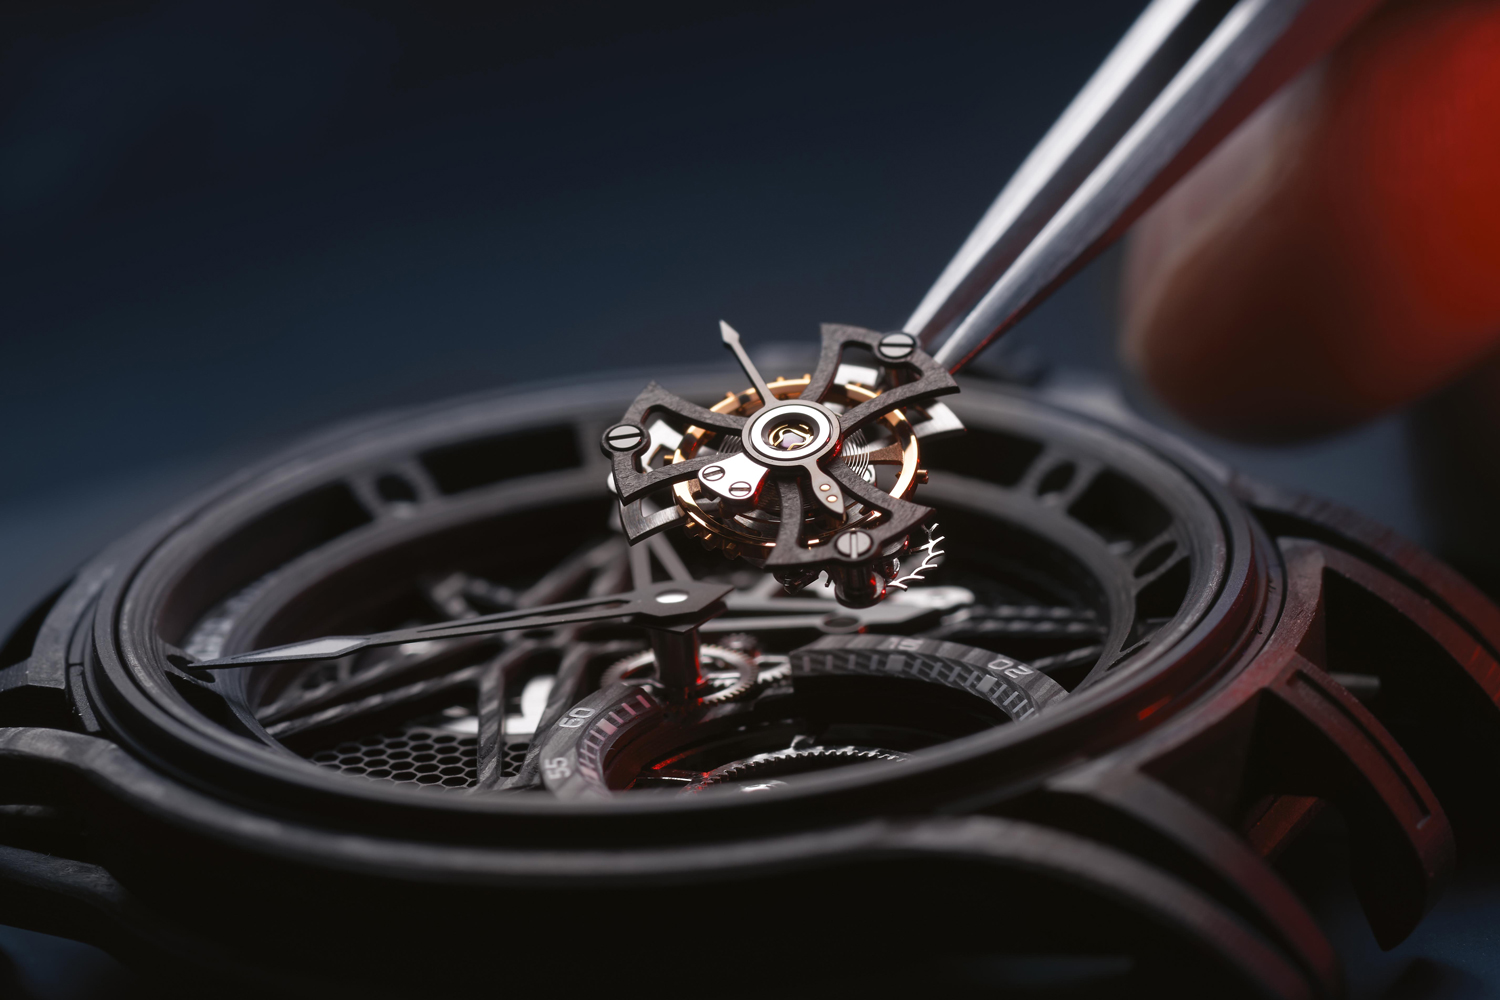 A watchmaker sets a Roger Dubuis tourbillon into a multi-layered carbon case (Image © Revolution)